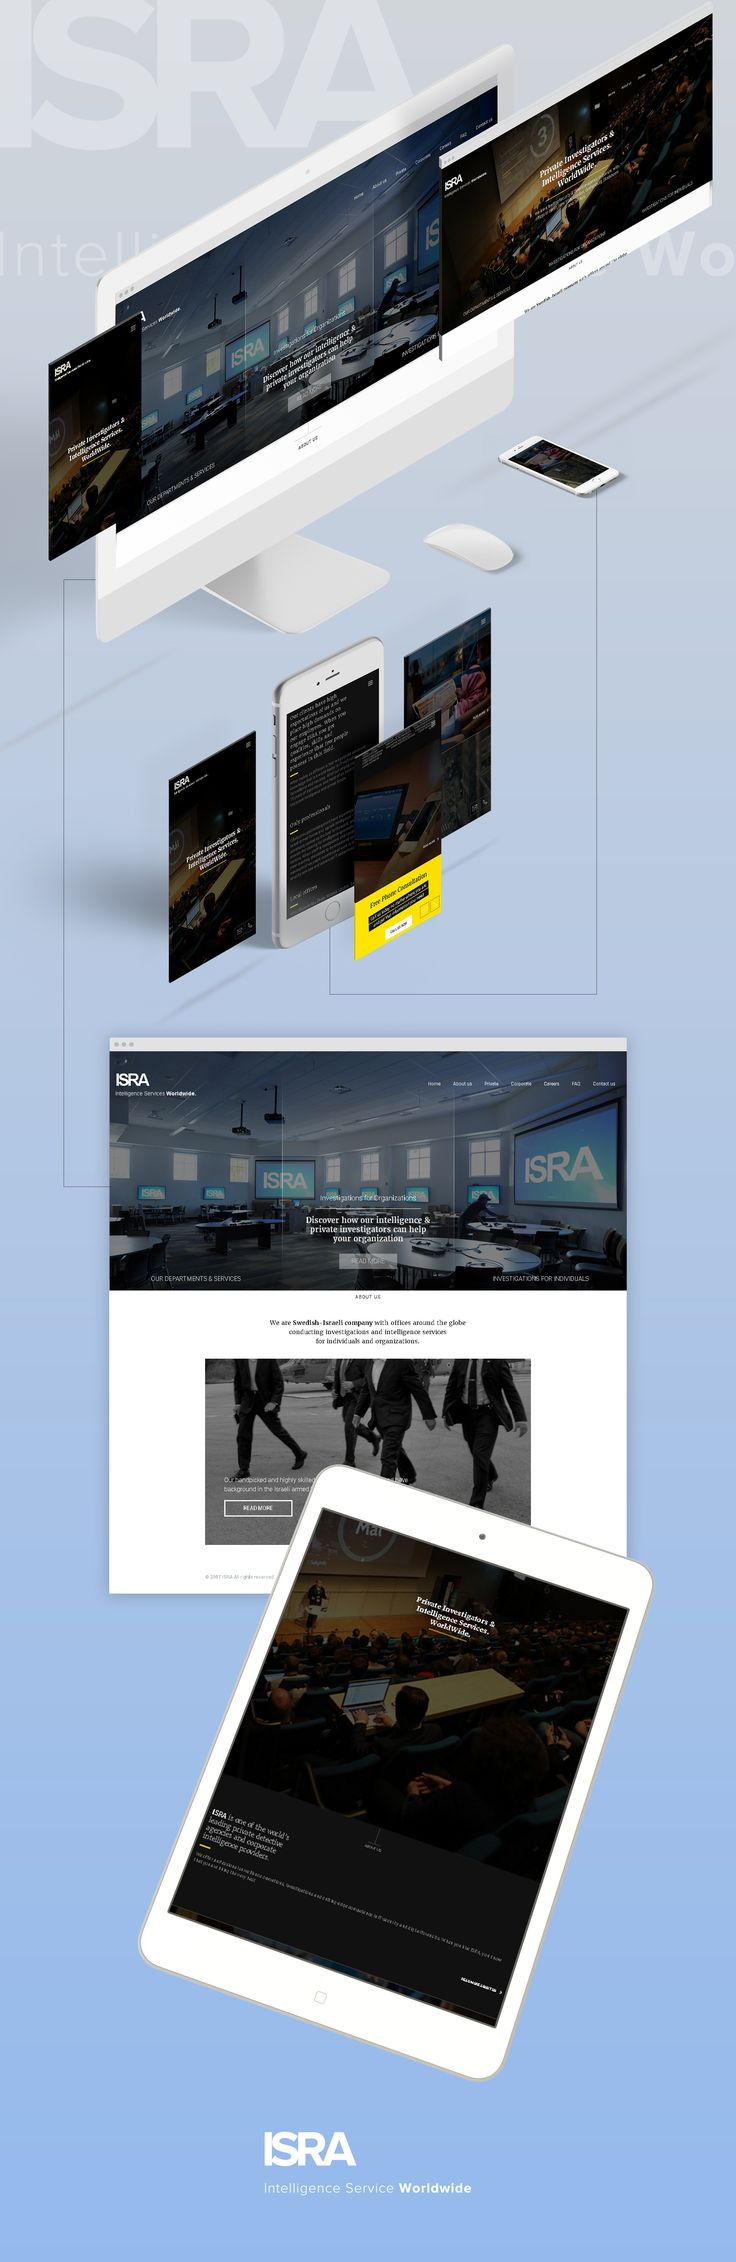 ISRA is a leading security & detective agency in Europe, with offices in New York, London, Berlin and etc.  Description:  The task was to create WP website based on PSD mockups according to the clients requirements. I developed informational pages with the ability to edit the content. I installed and set up the following plugins:  - Contact Form 7,  - Custom Field Suite,  - Yoast Seo, Polylang,  - WP Mail SMTP. Technologies used: PSD to WP, CSS, HTML, PHP.